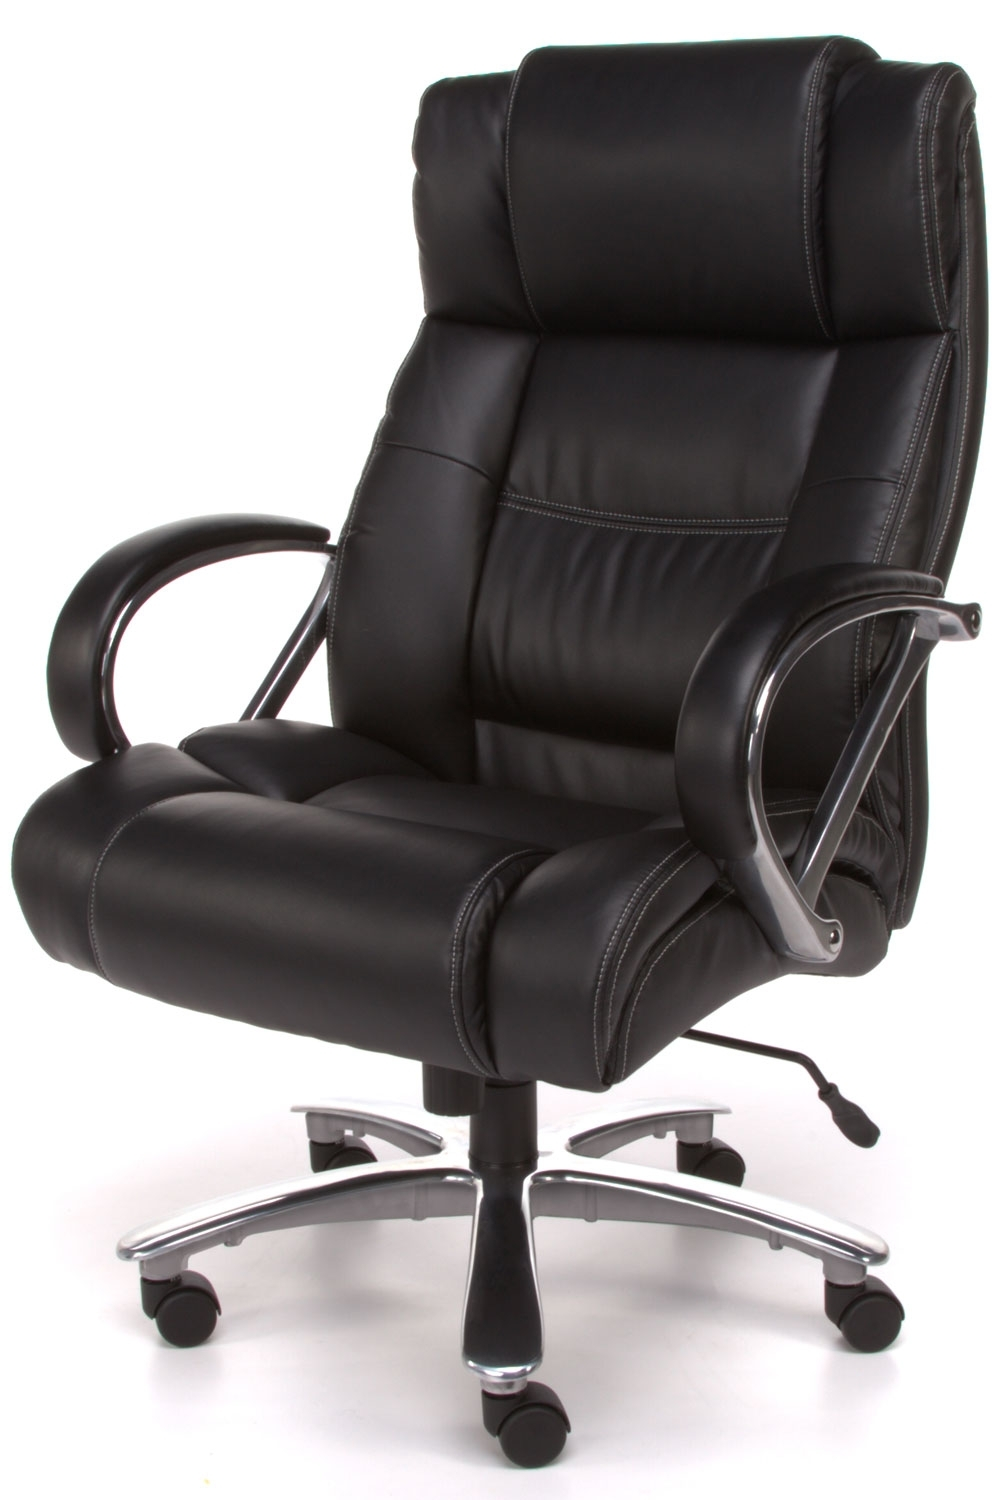 Big And Tall Executive Office Chairs With Regard To Latest 810 Lx Avenger Series Big And Tall Executive Office Chair In (View 4 of 20)